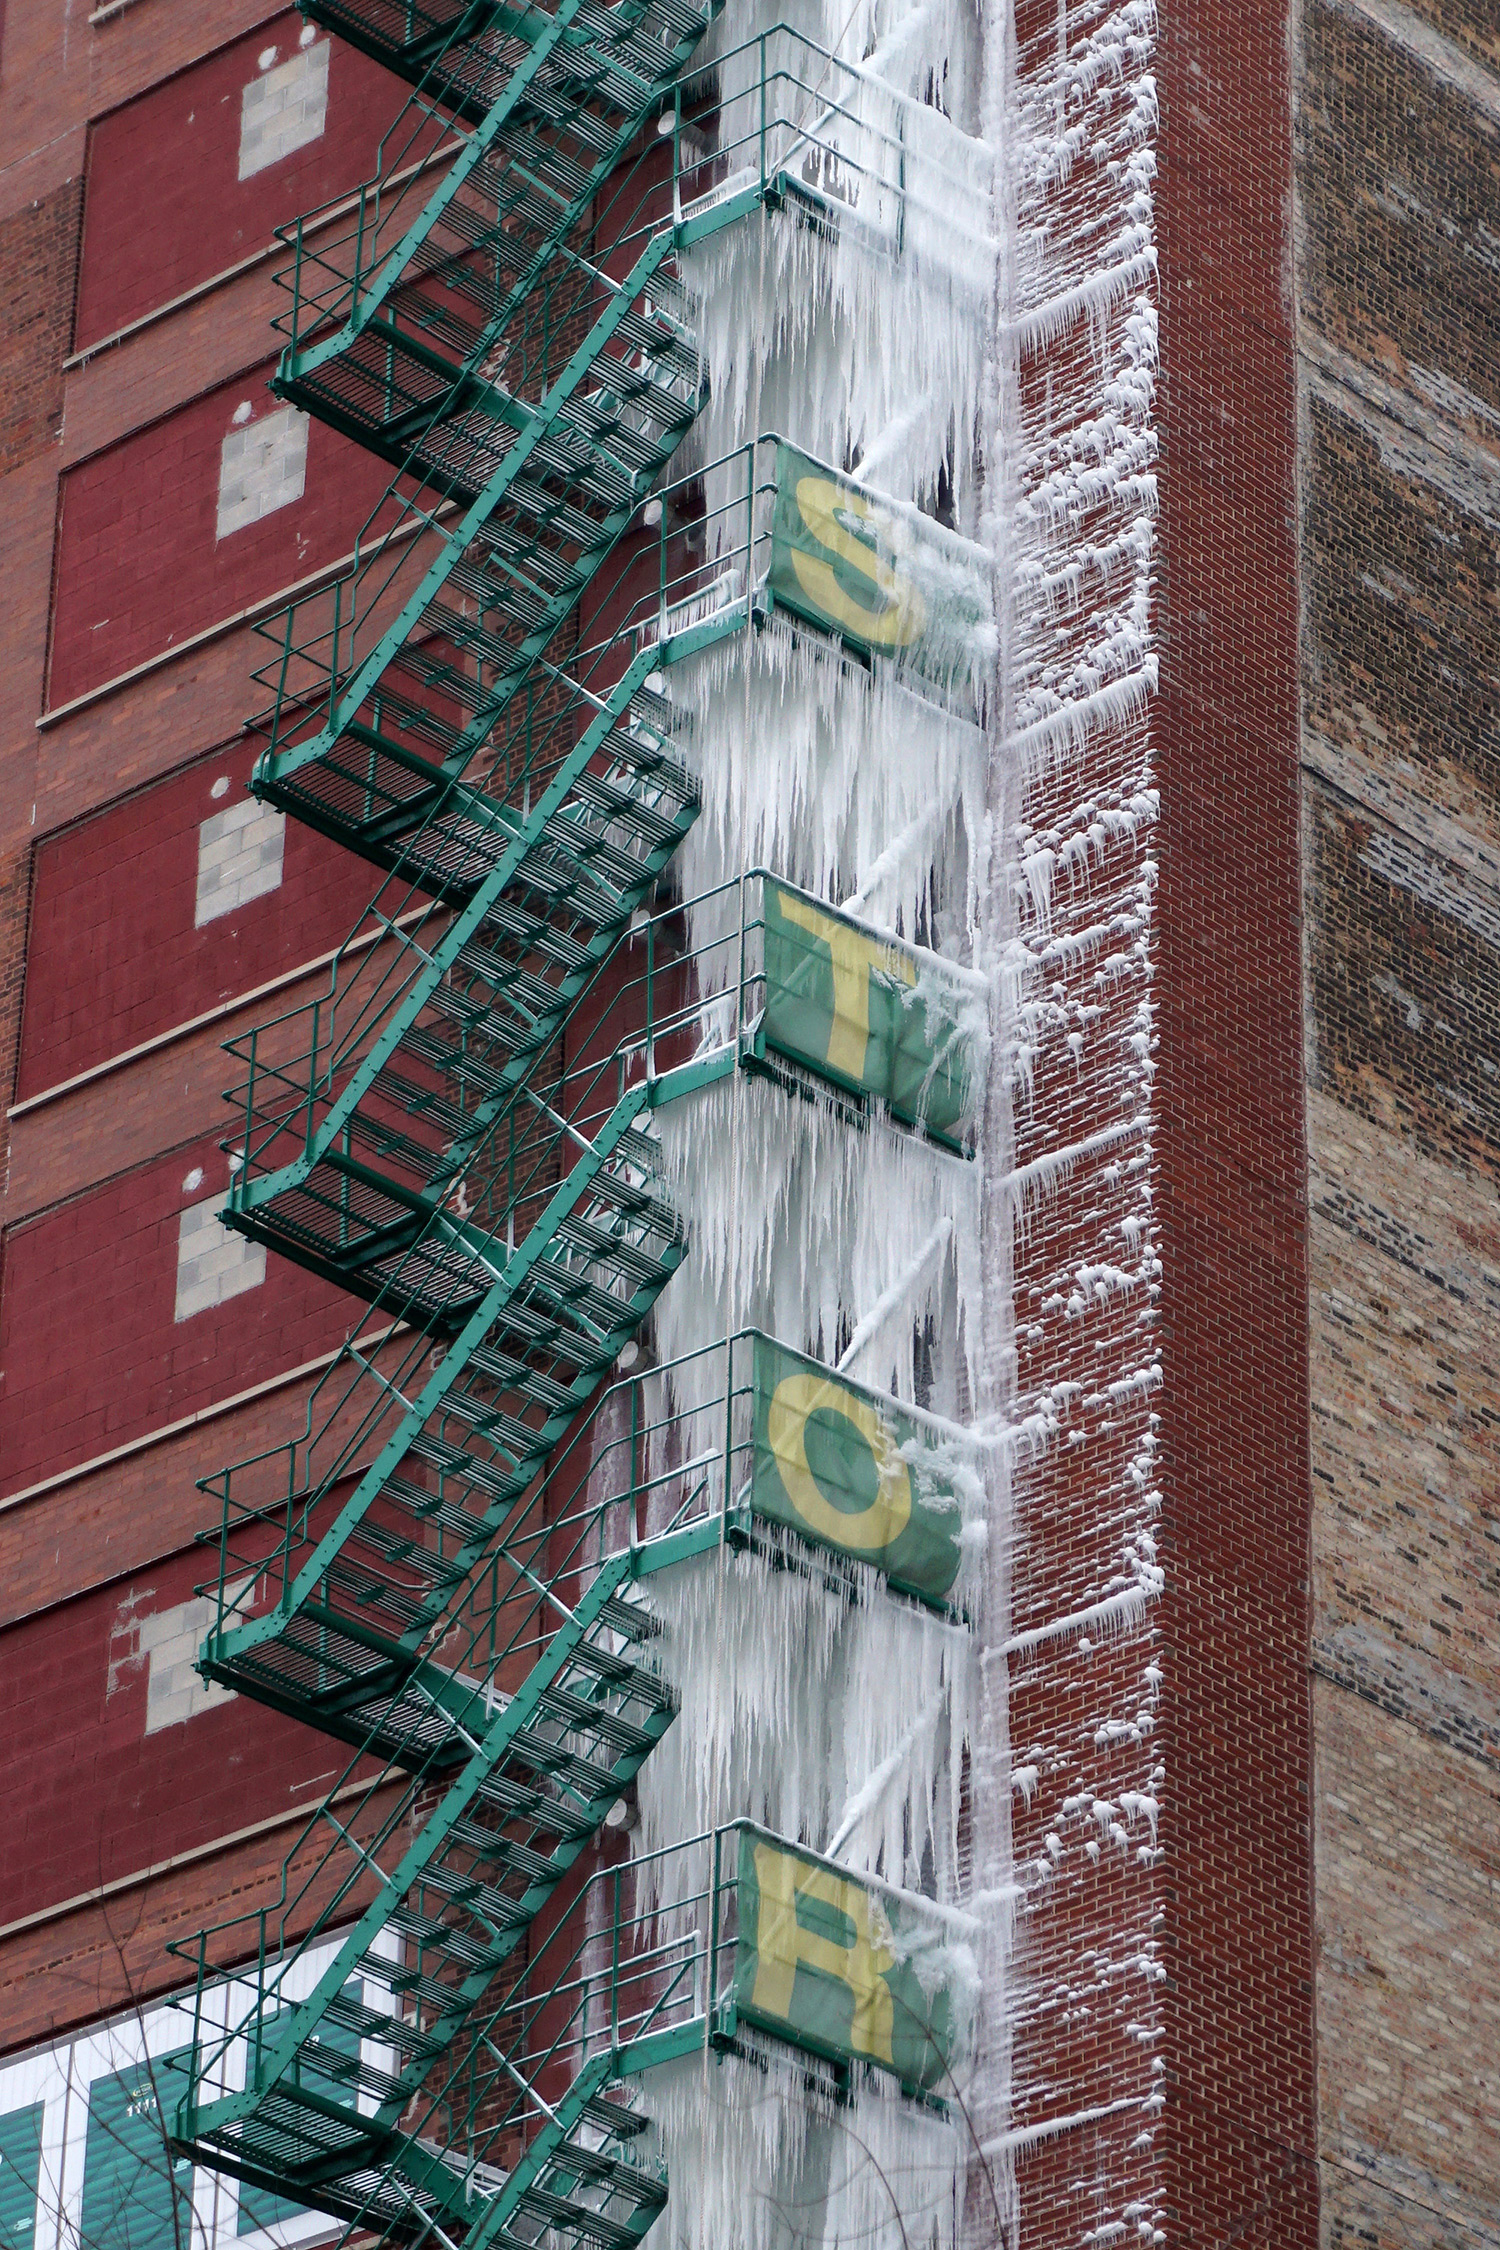 A Top Floor Sprinkler Leak Creates a 21-Story Tower of Icicles on a Chicago Fire Escape (6 pics)